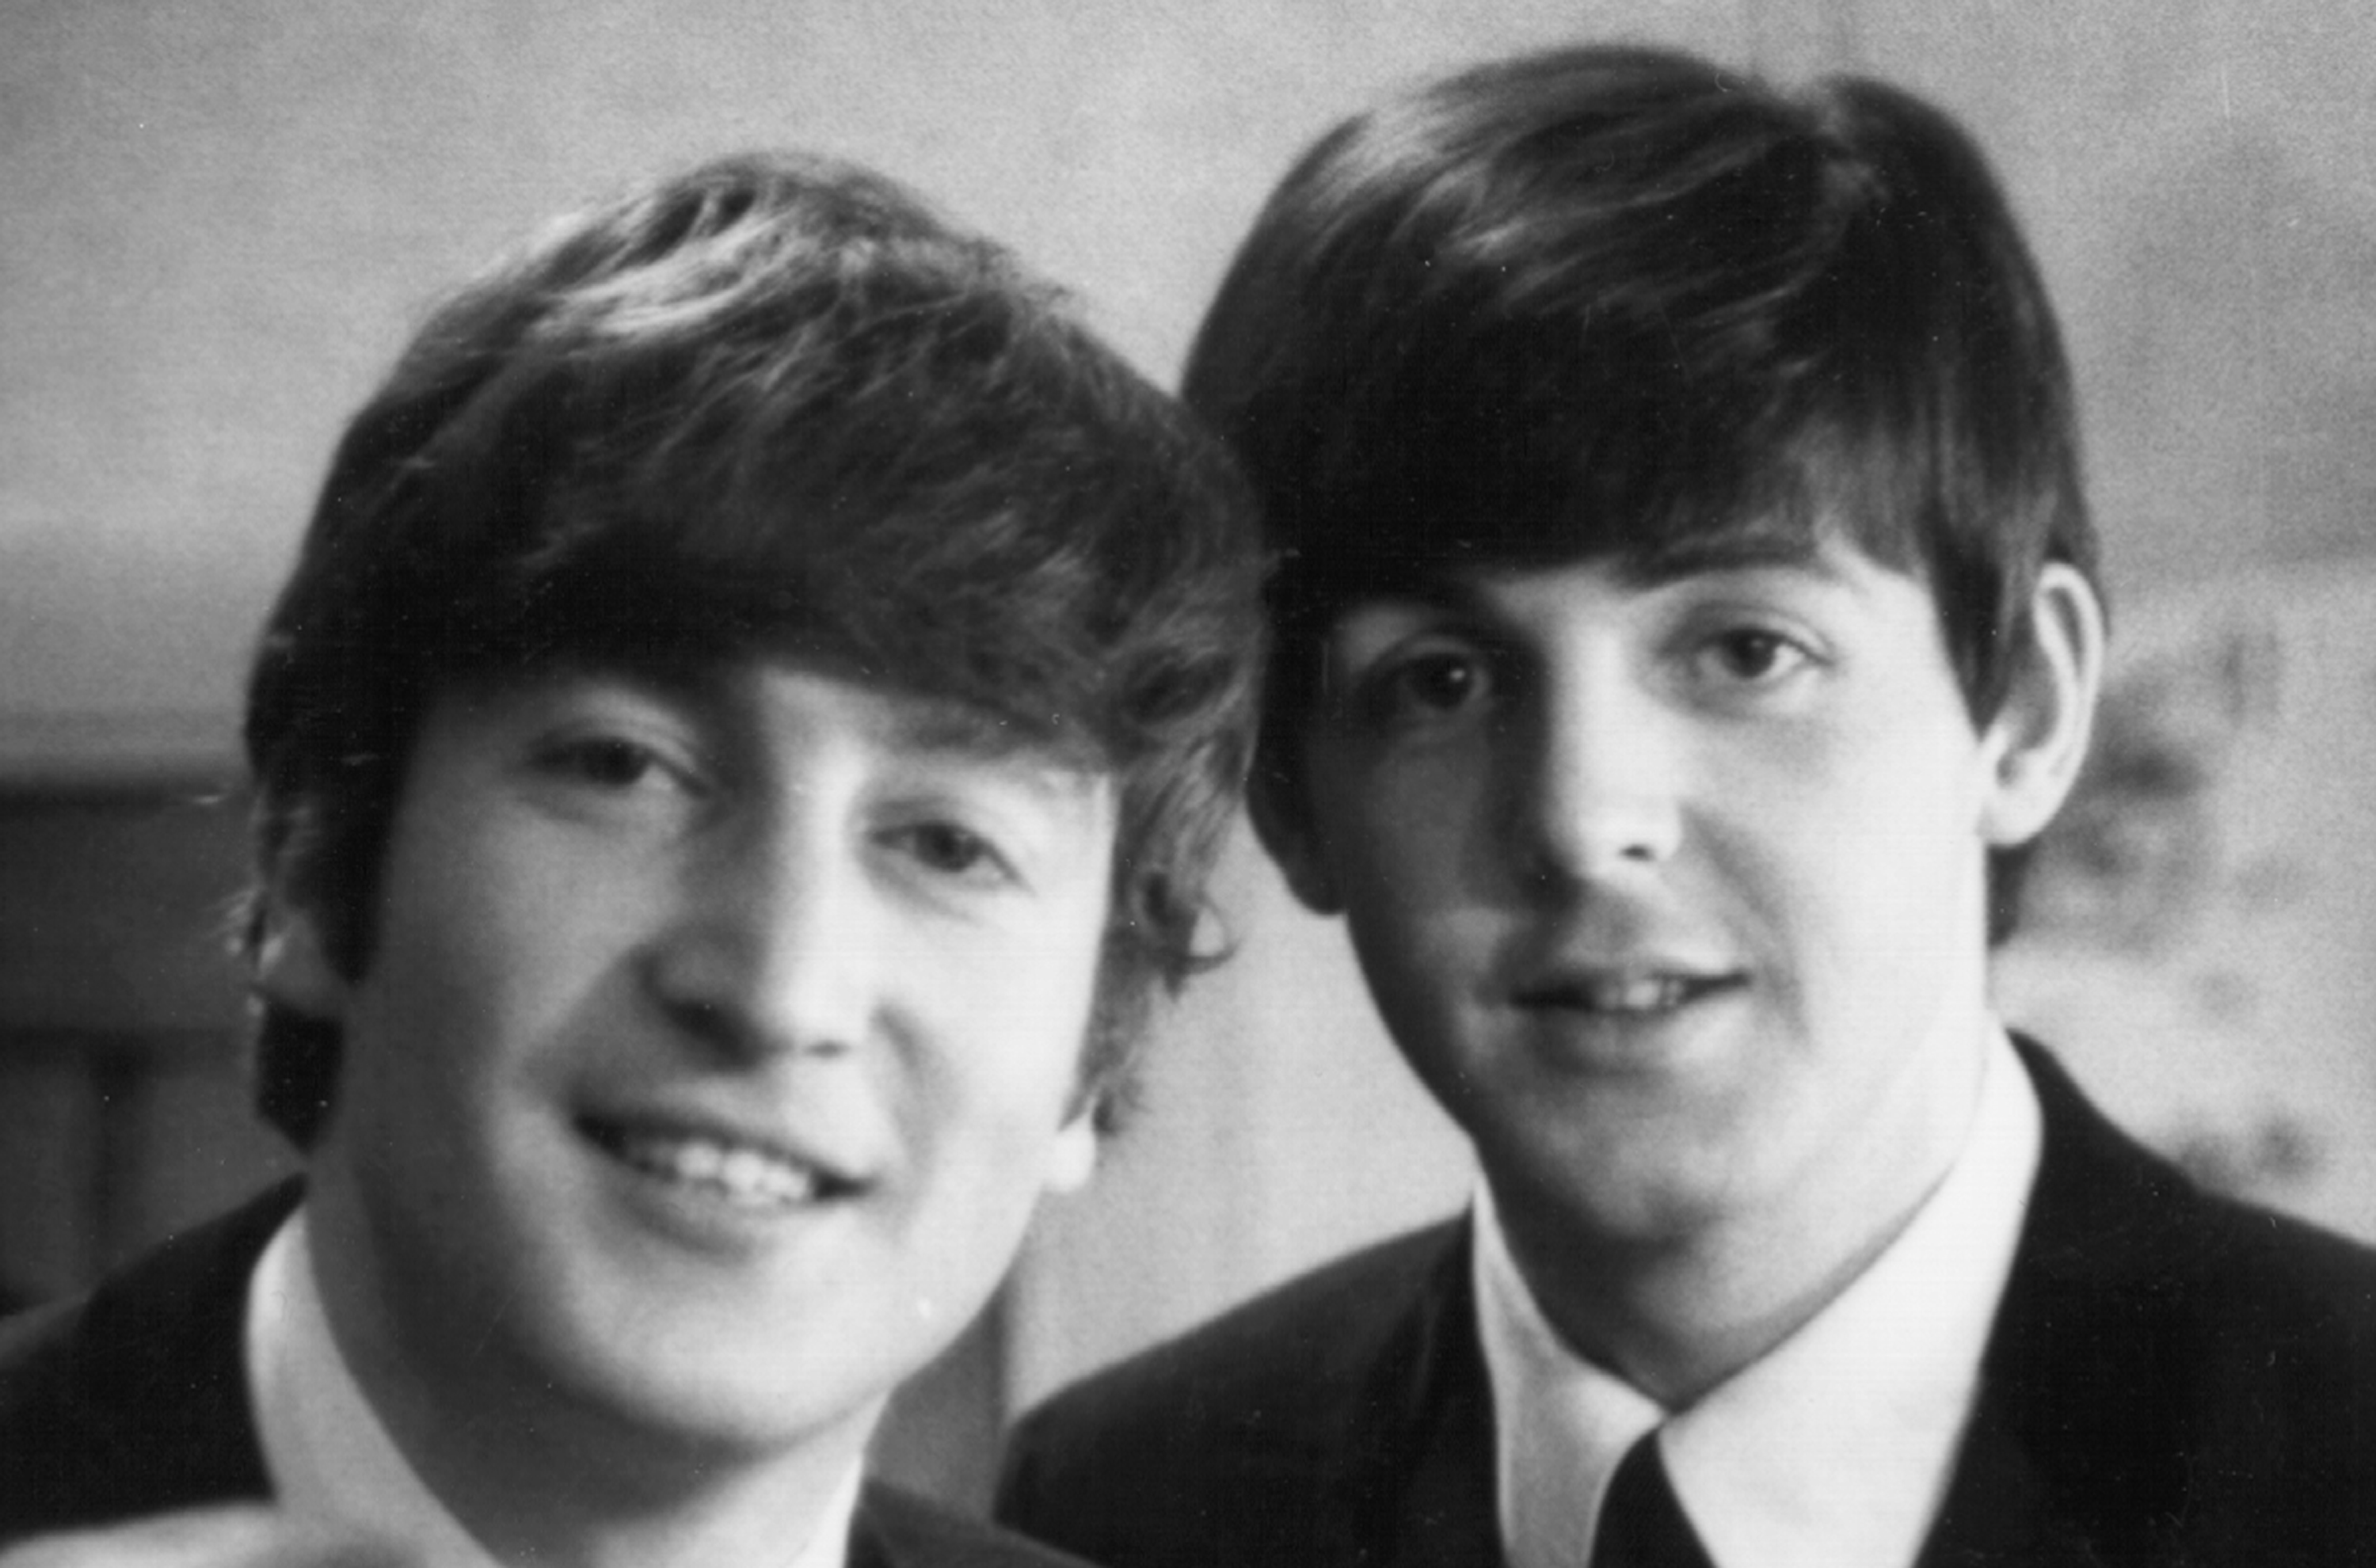 b5f8e6aabf8ea New Details Emerge About The Beatles' John Lennon and Paul ...